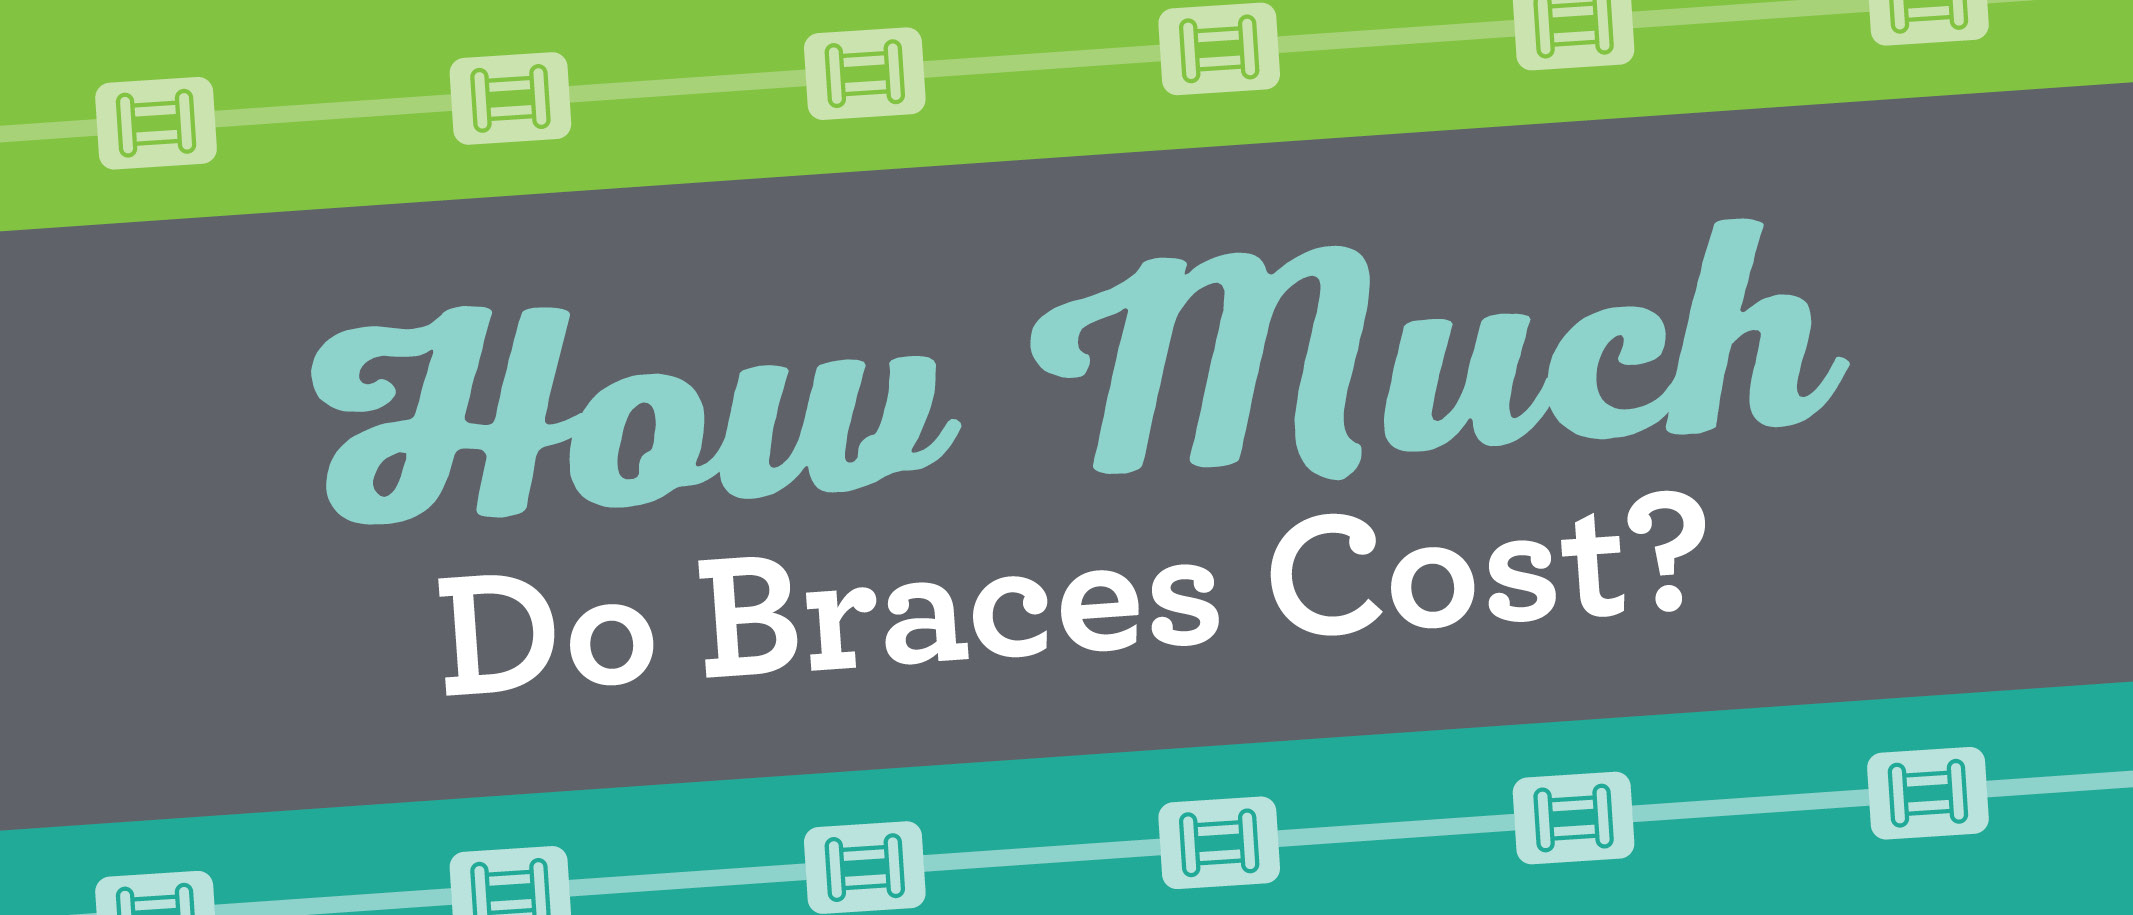 Counting the Cost of Braces